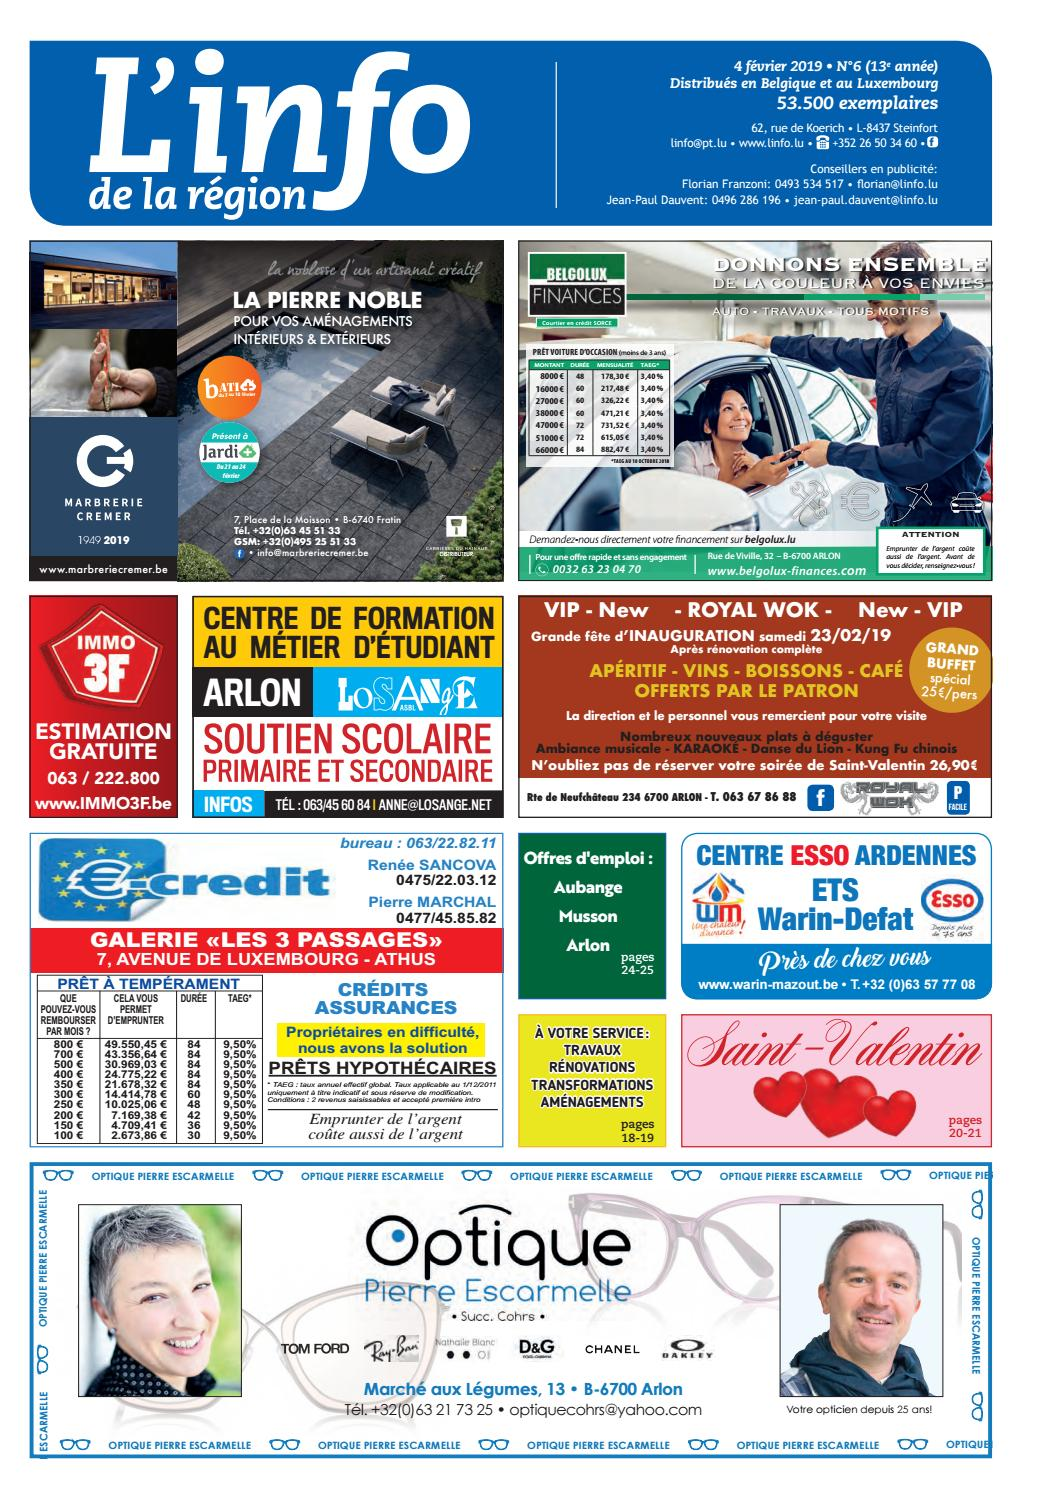 Edition Inside 6 De La Issuu L'info By Région YH2EeWID9